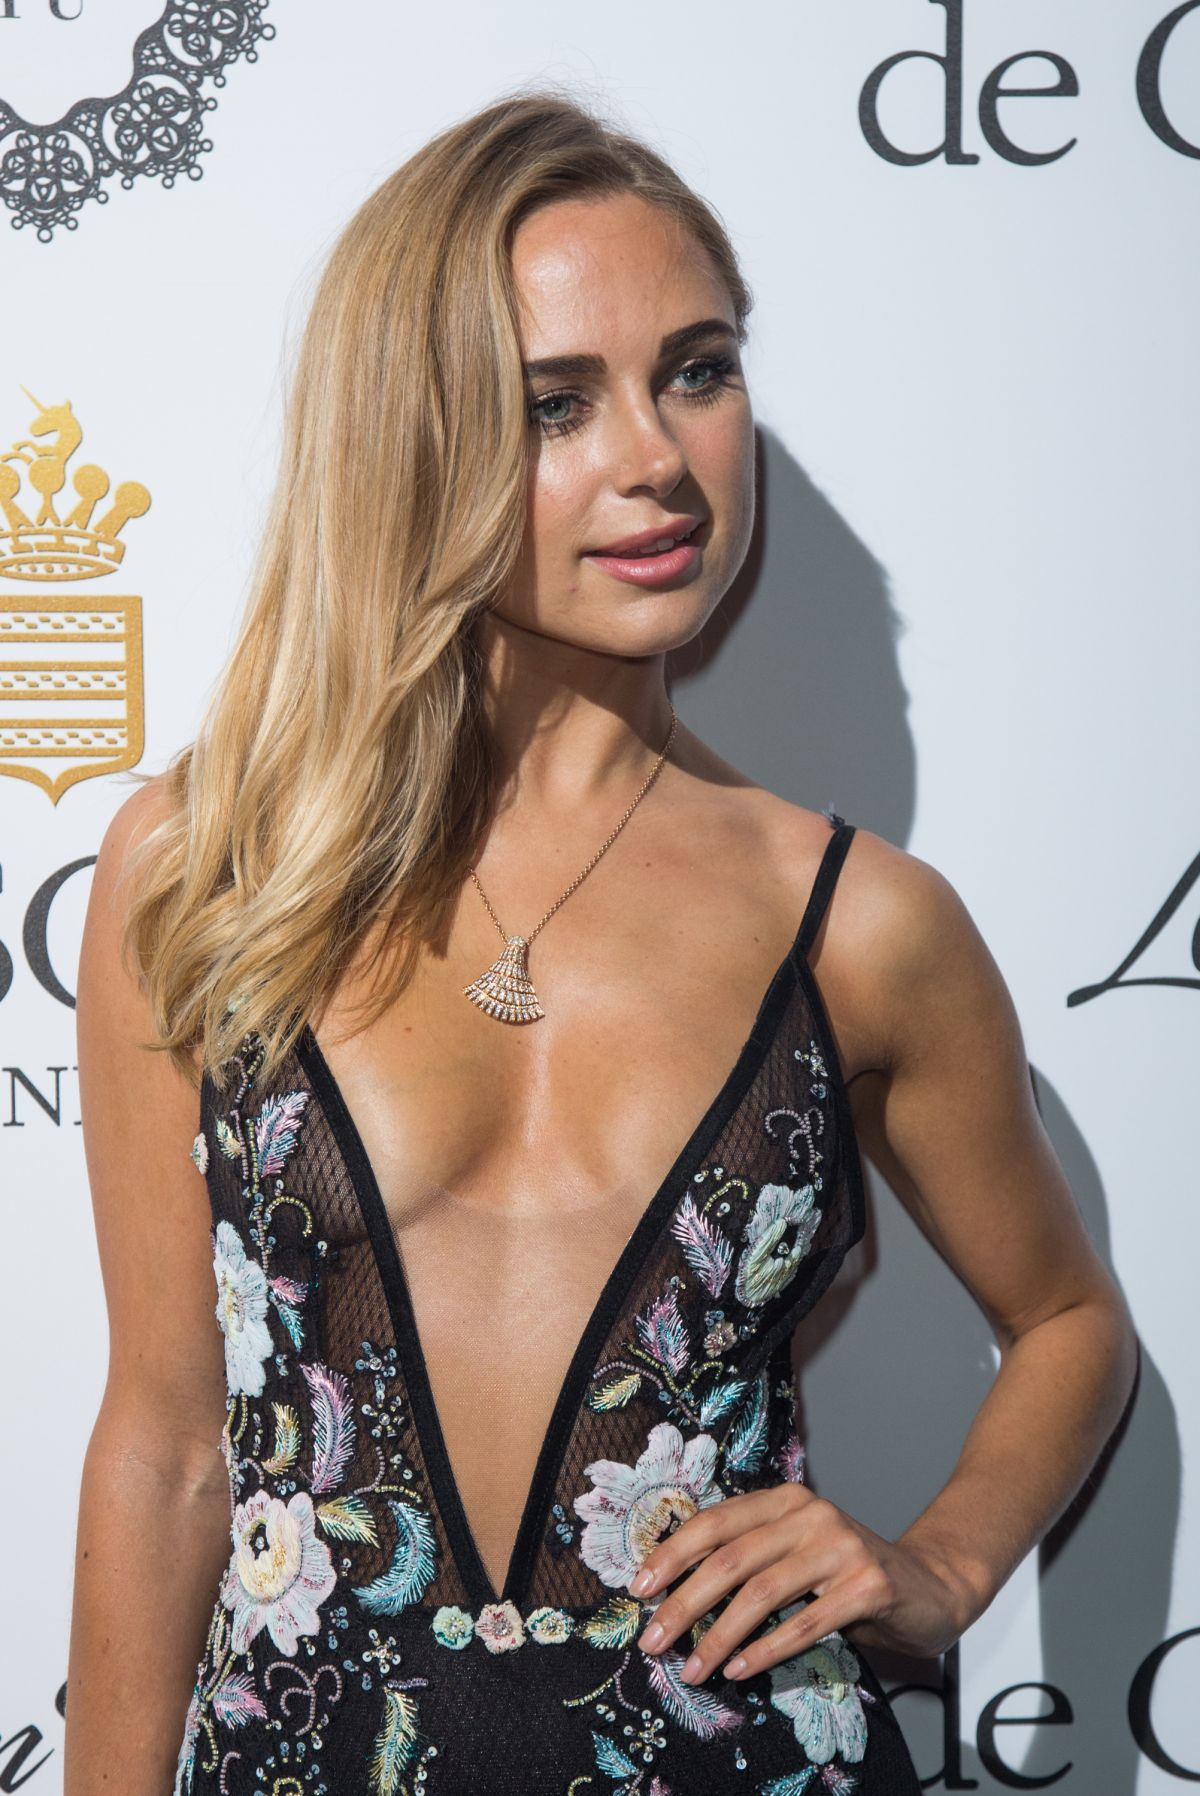 Photos Kimberley Garner naked (19 photos), Topless, Hot, Selfie, braless 2019